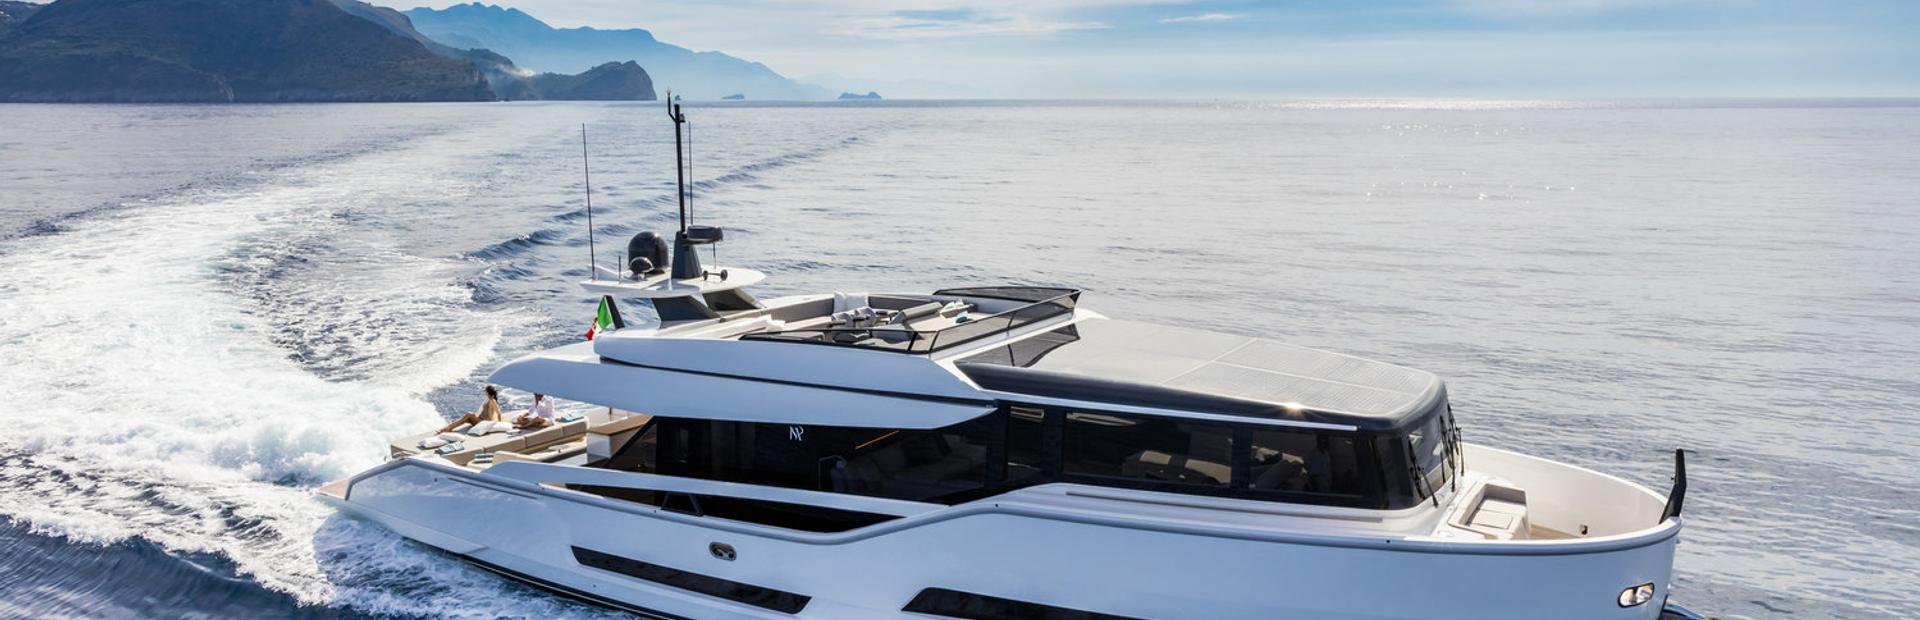 Extra 76 Yacht Charter